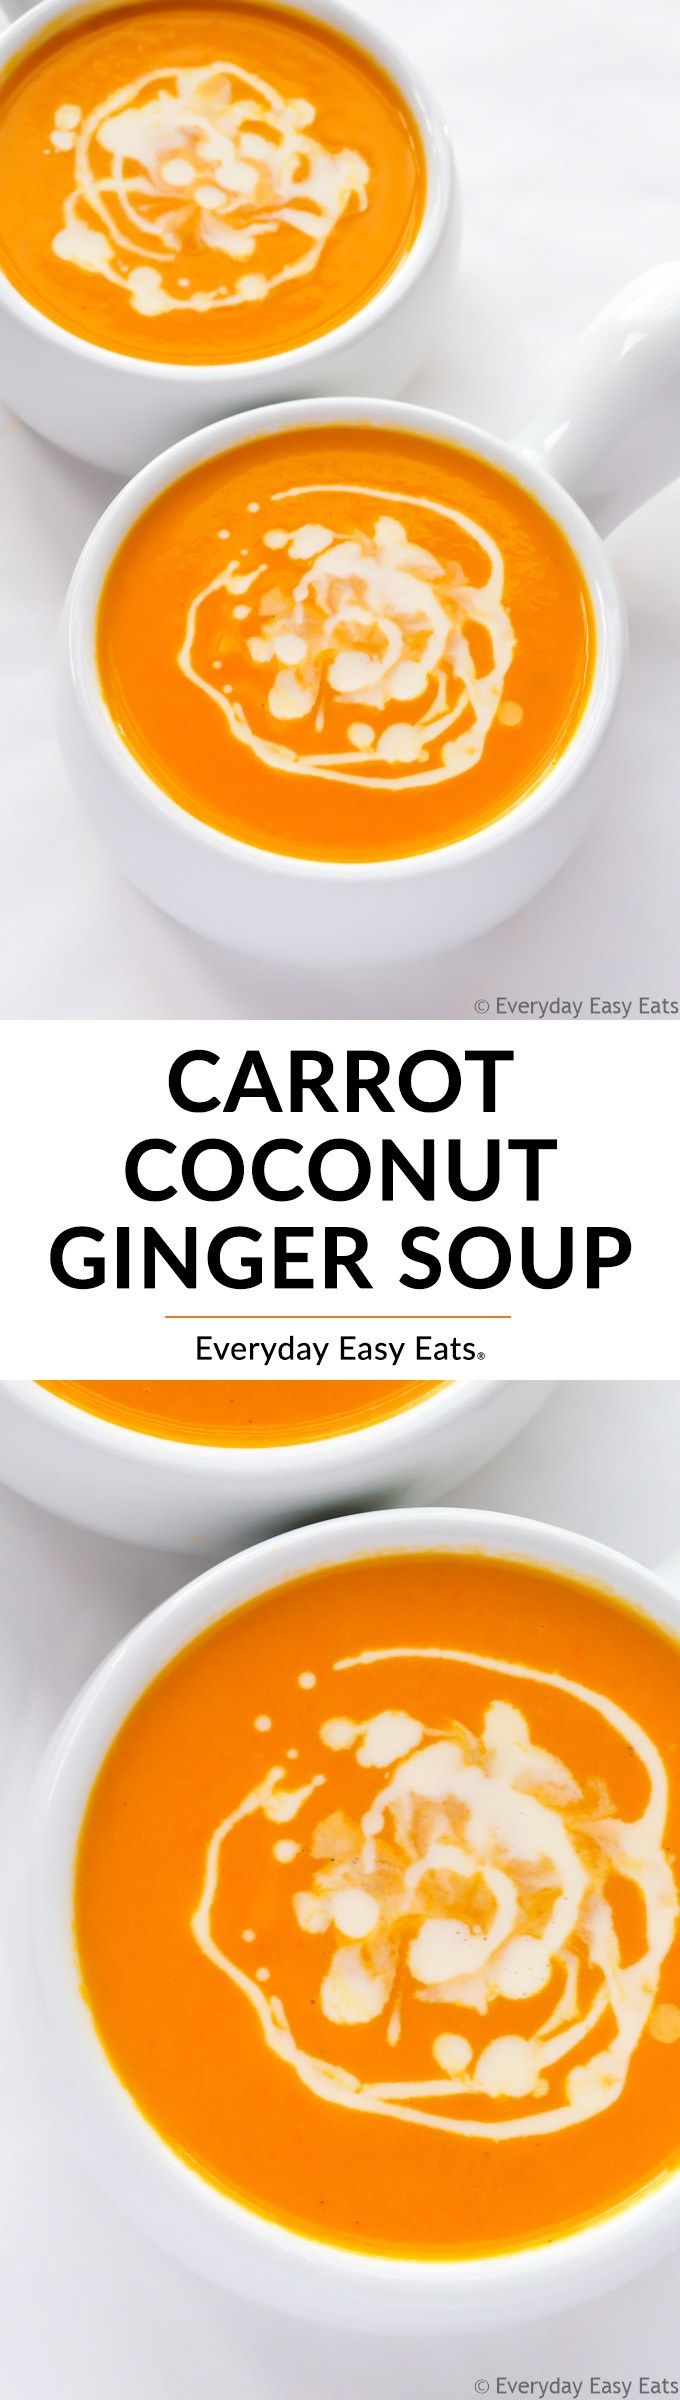 Everyday exotic ginger recipes easy